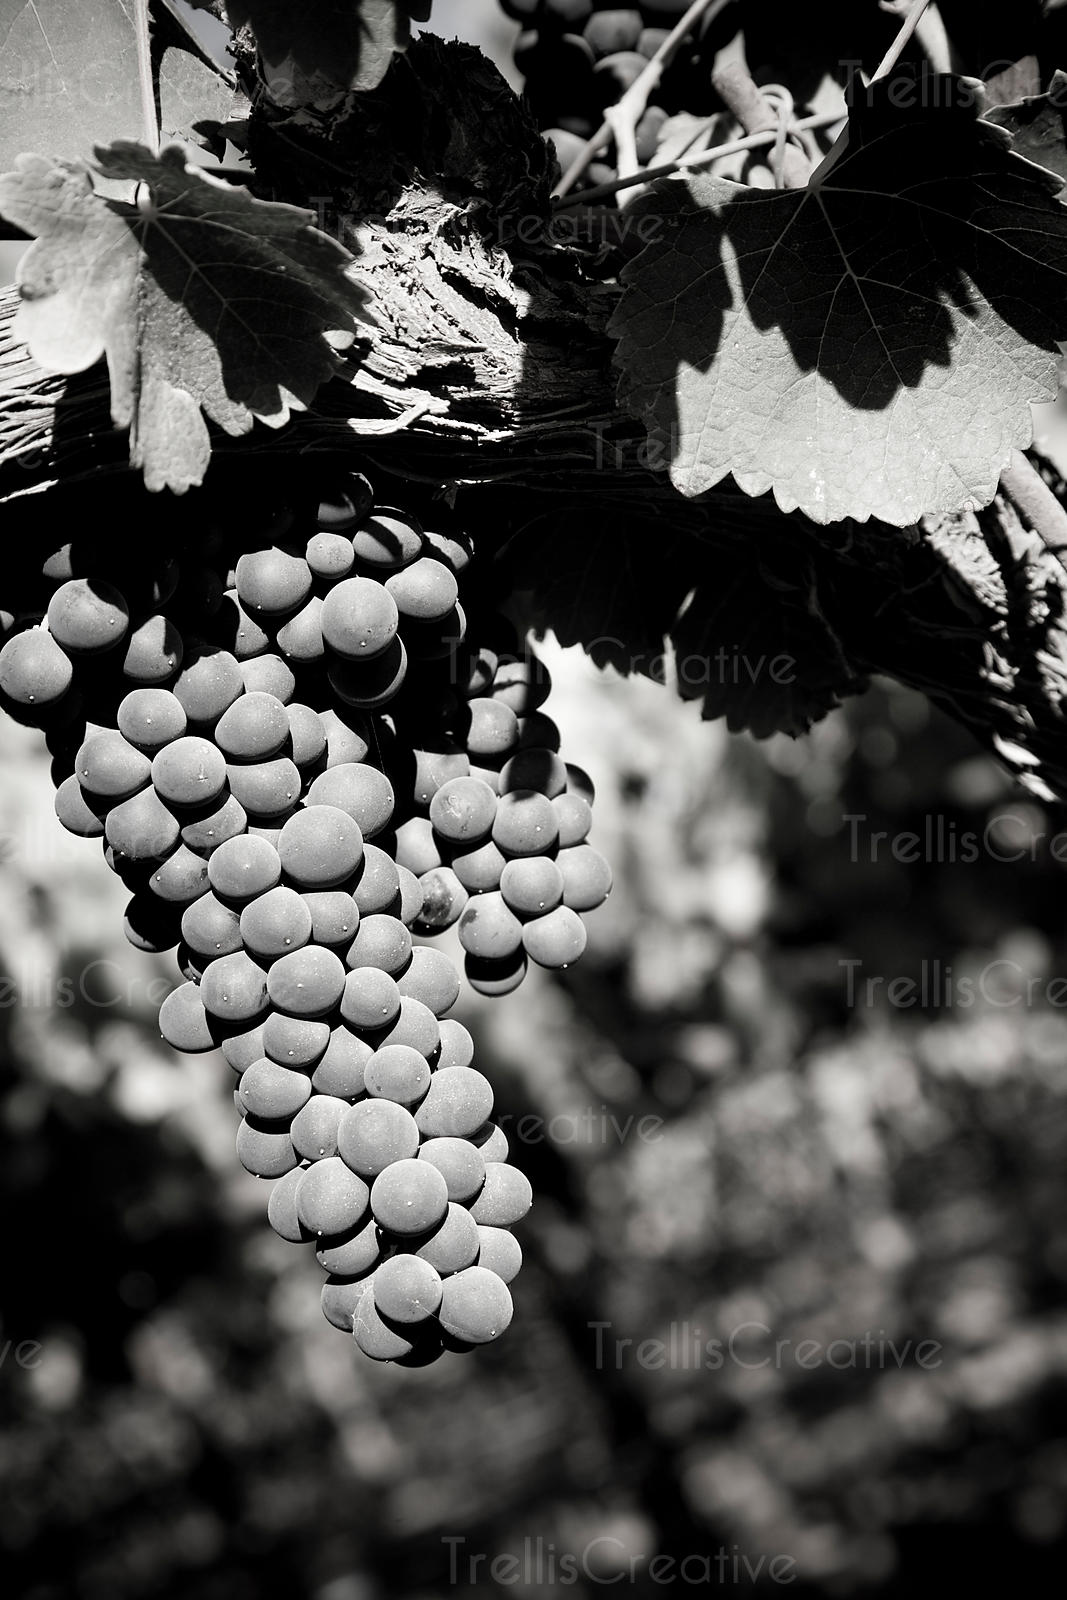 Ripe clusters of pinot noir grapes hang on the vine